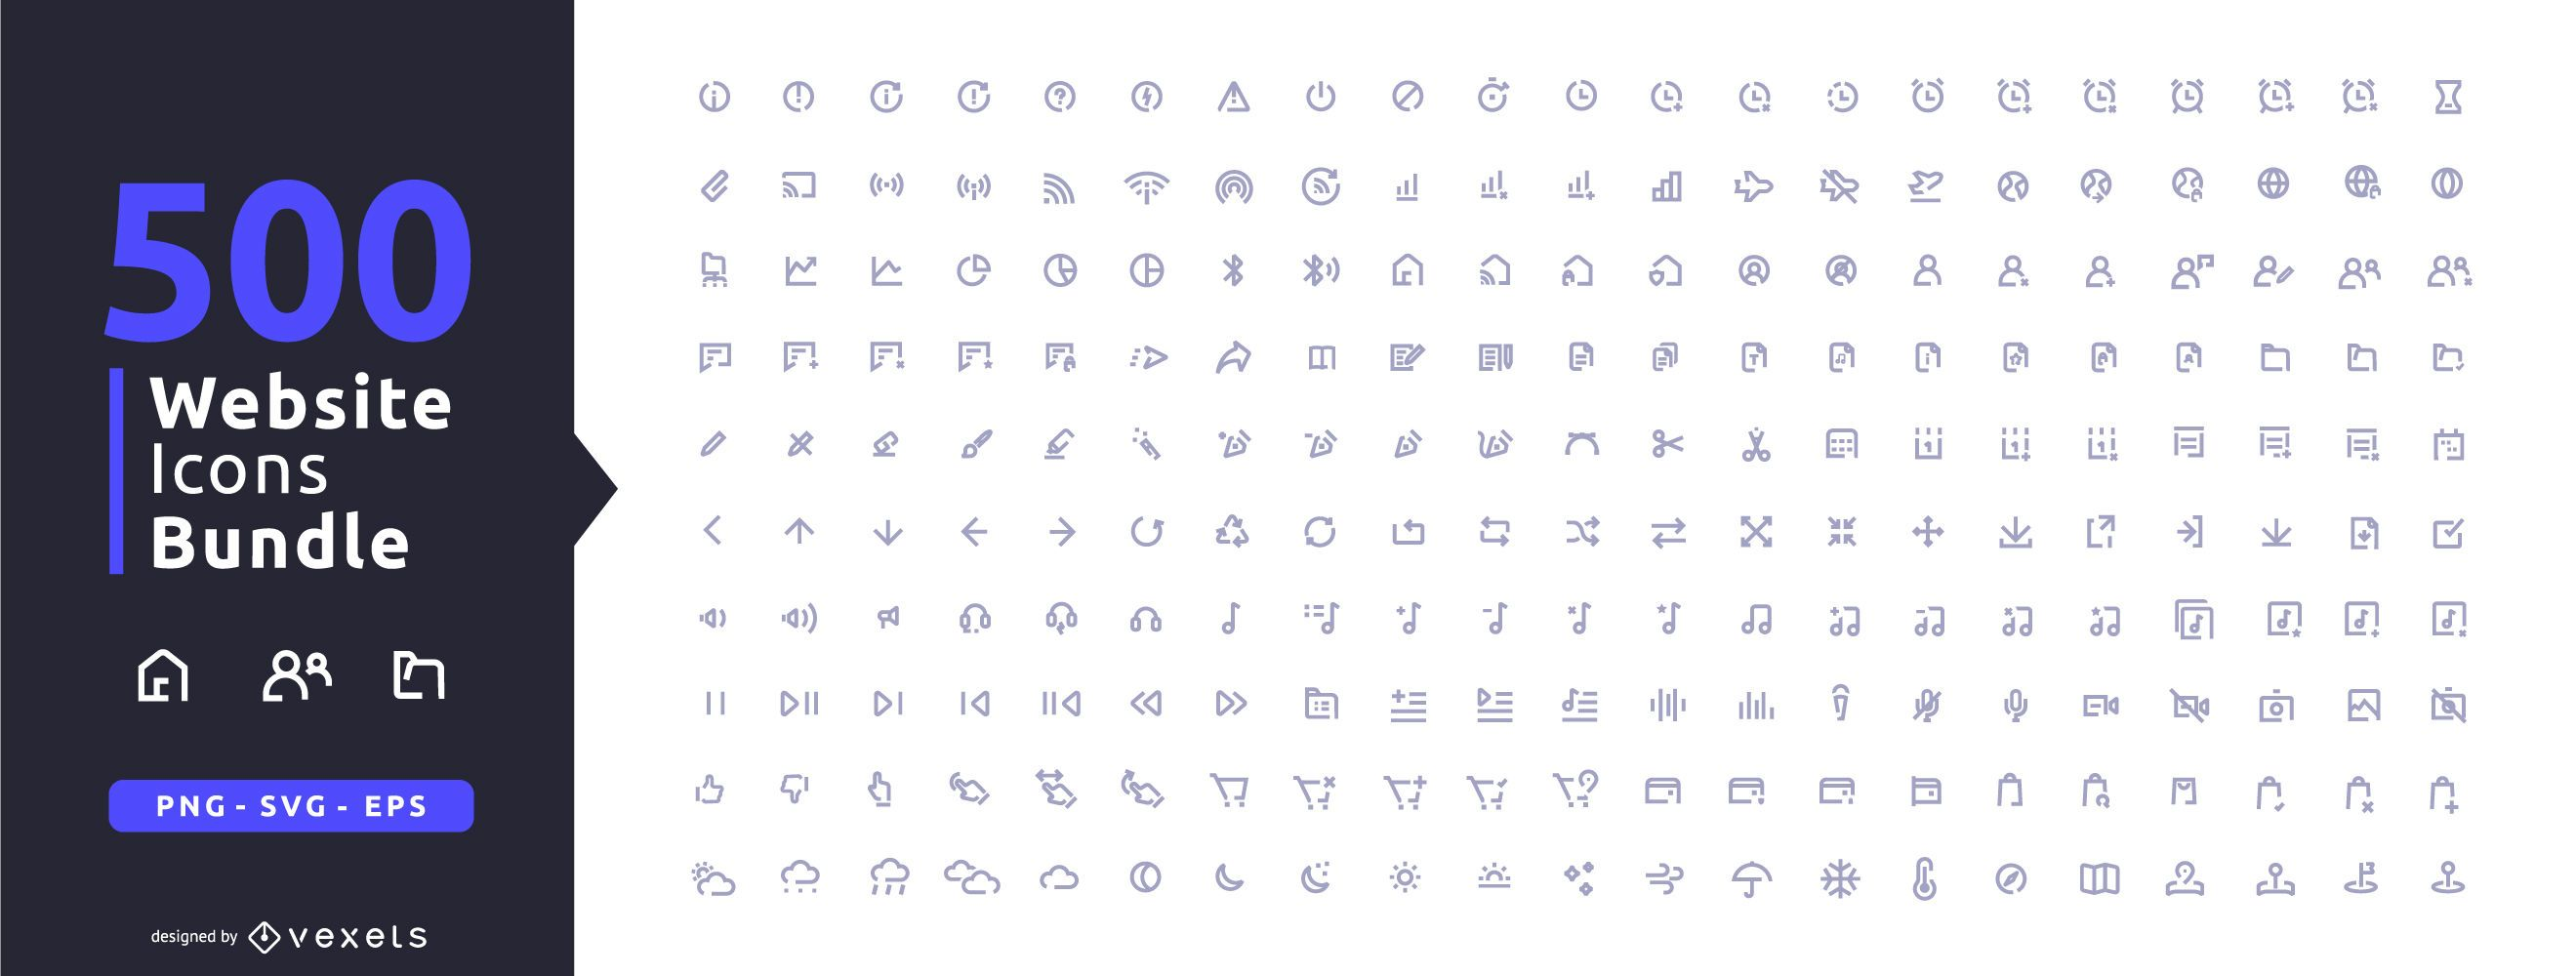 500 website icons collection